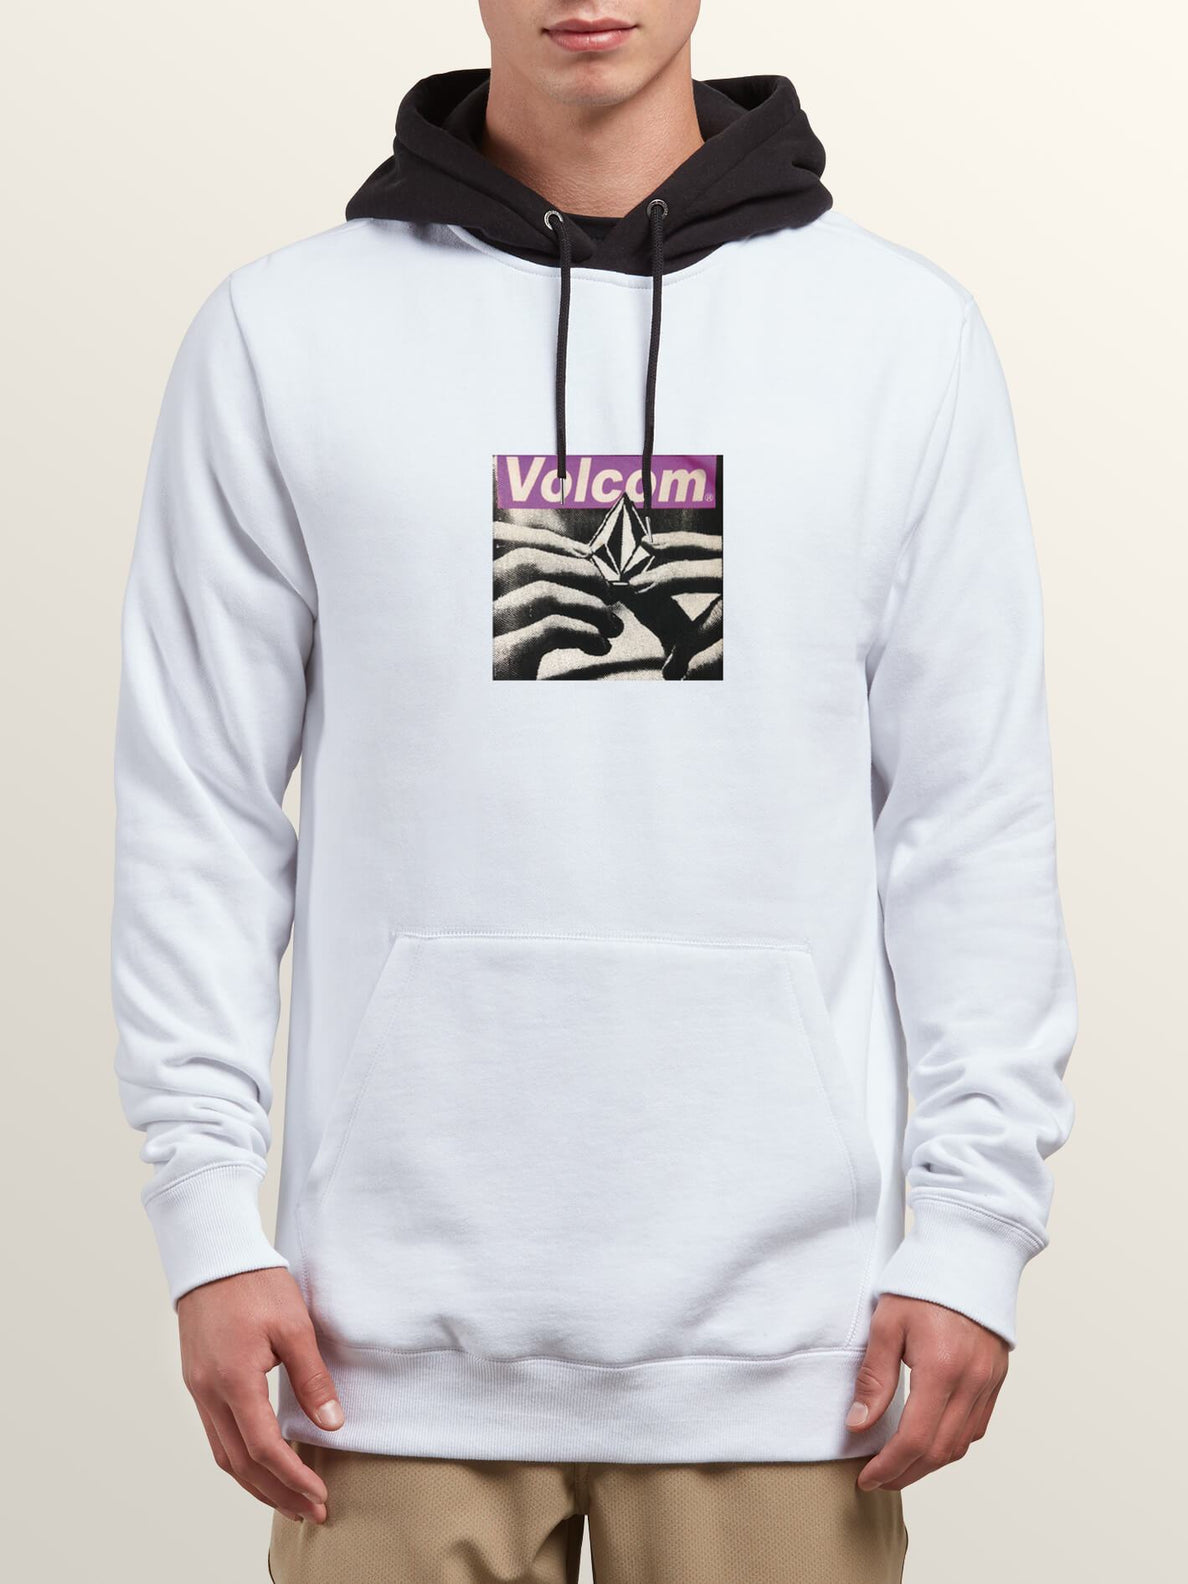 Reload Pullover Hoodie In White, Front View